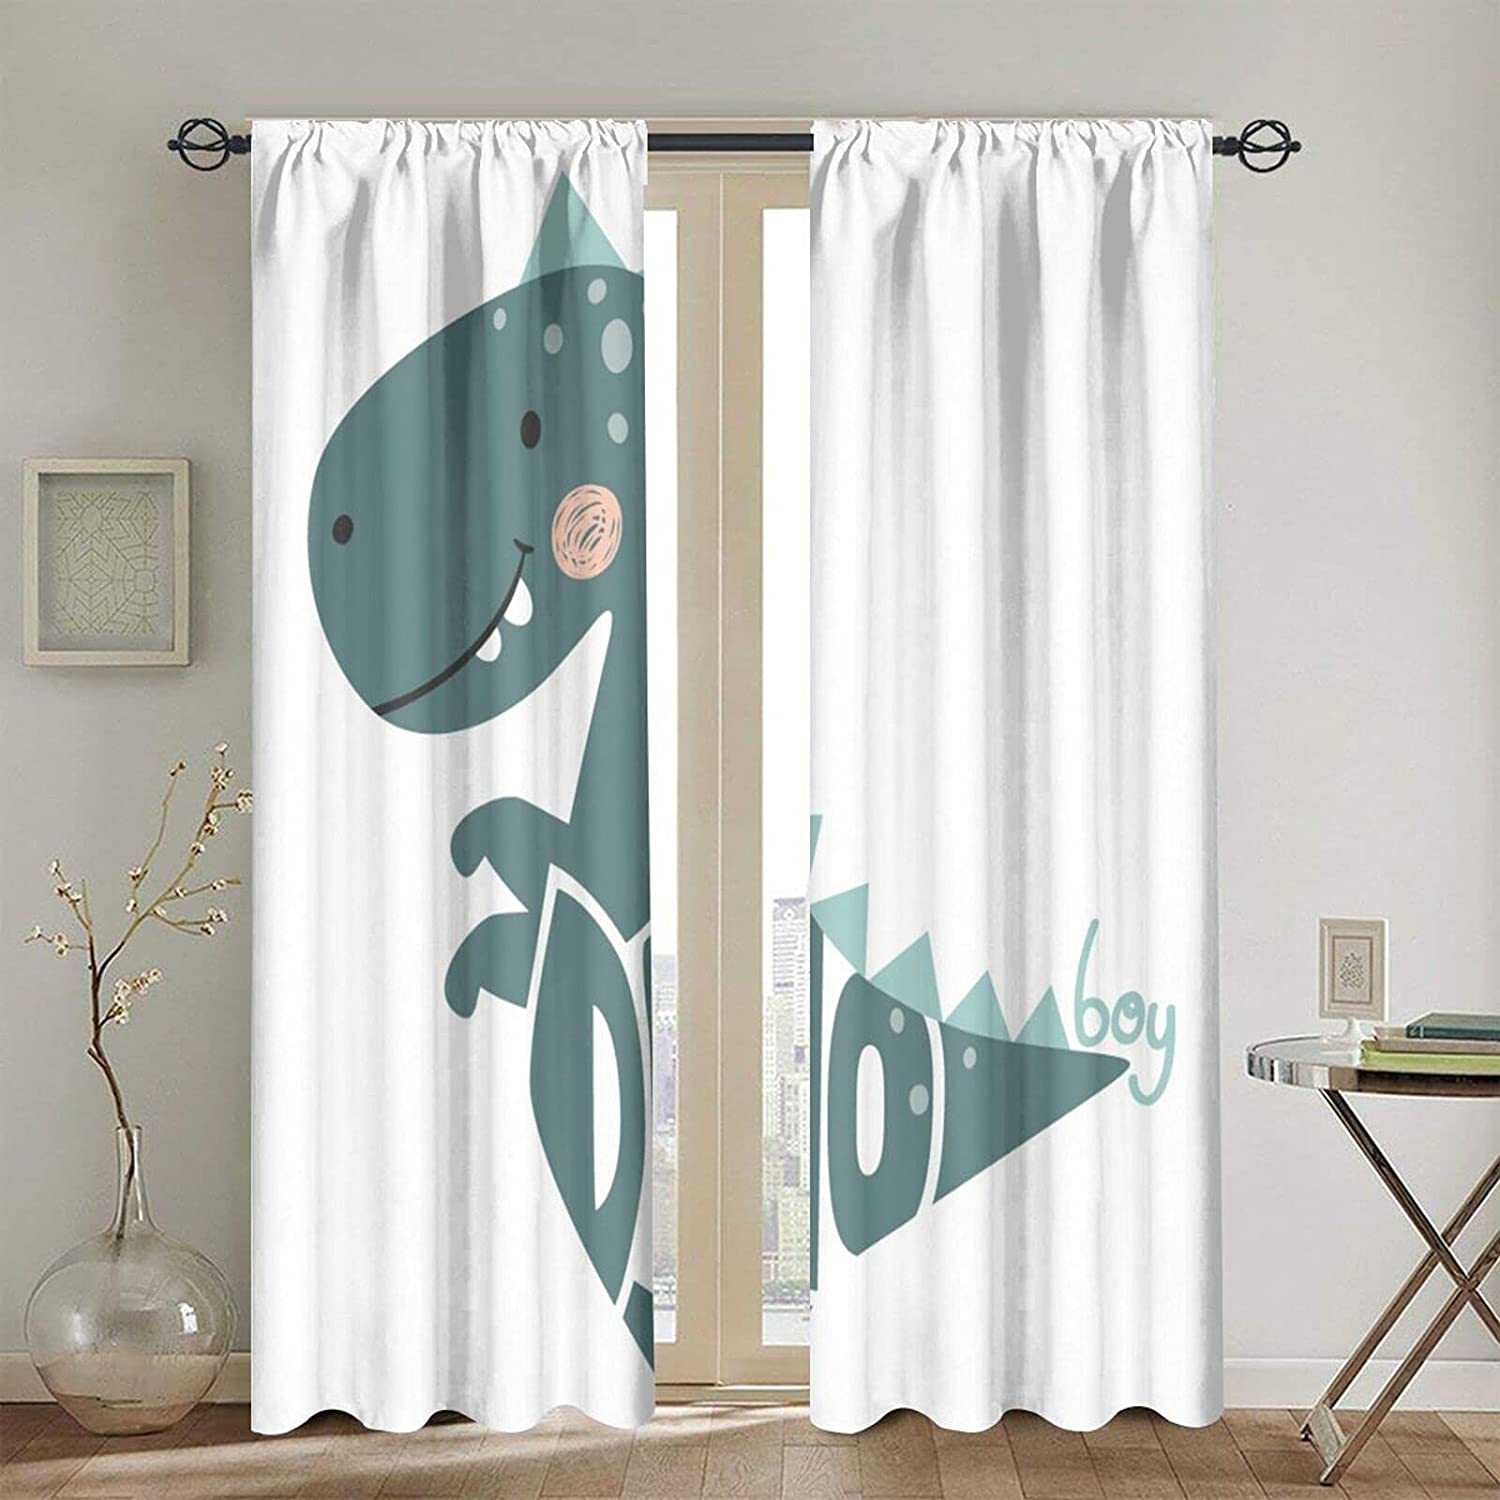 Rod Pocket Blackout Curtains Ranking TOP19 Thermal Insulated Curtain NEW before selling ☆ Window Di